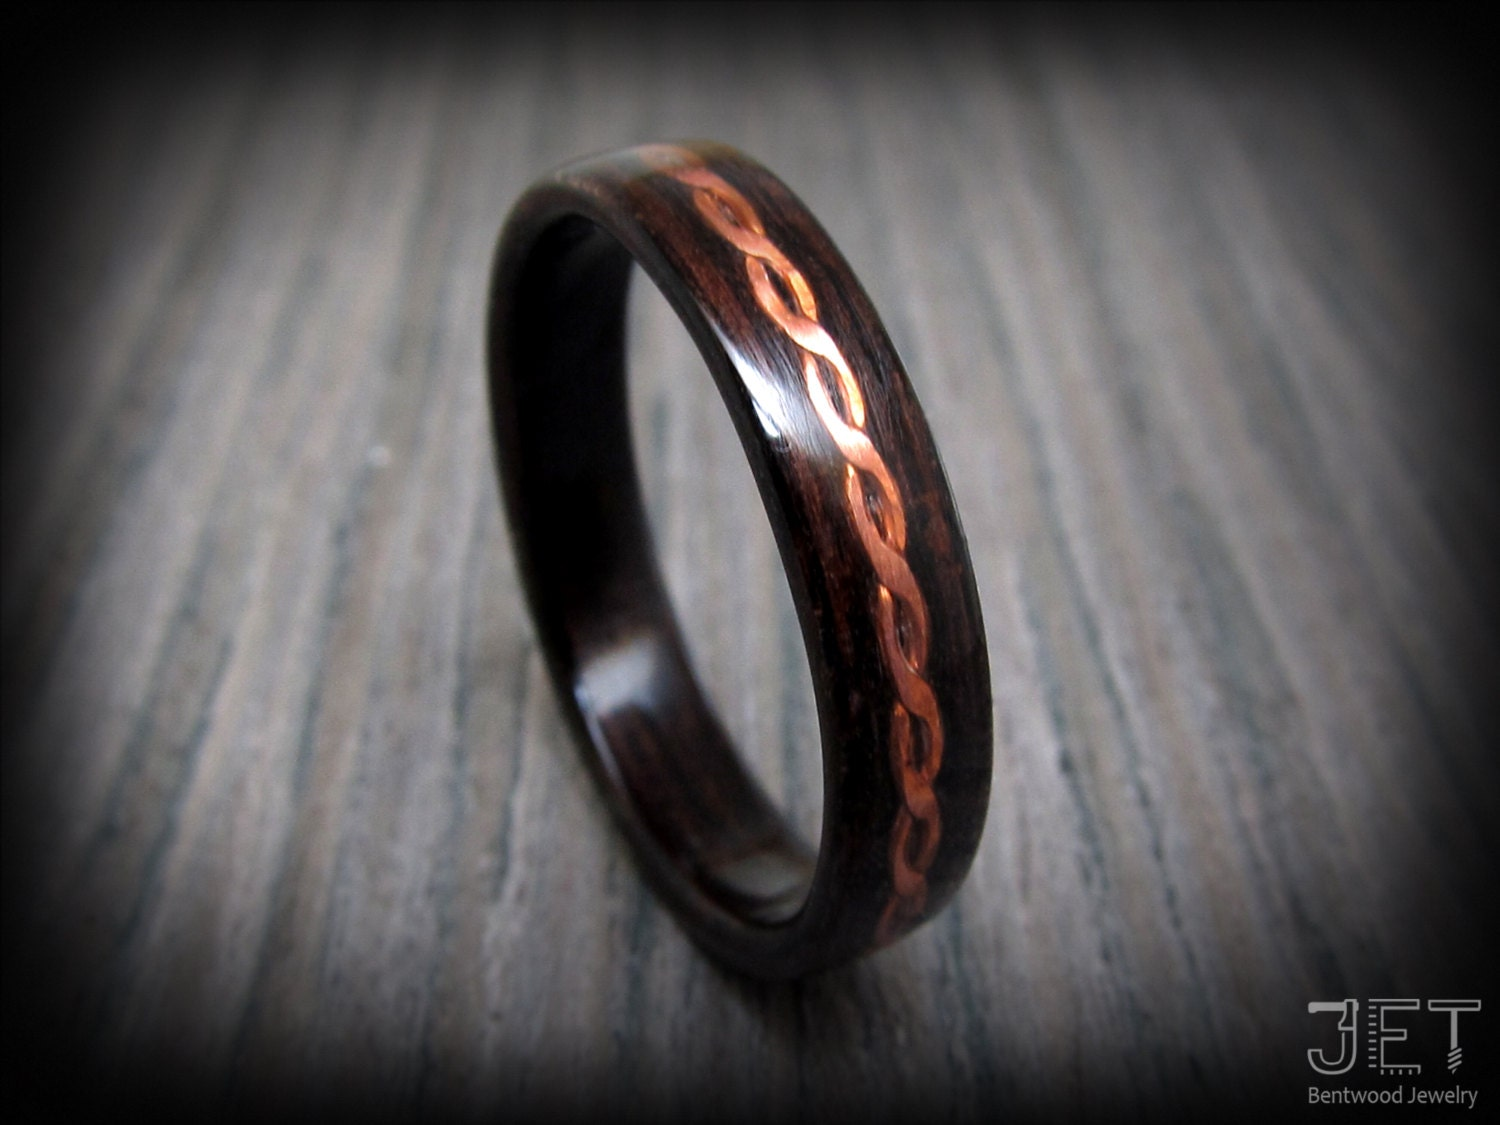 Steam BentWood Ring Macassar Ebony with Twisted and Hammered